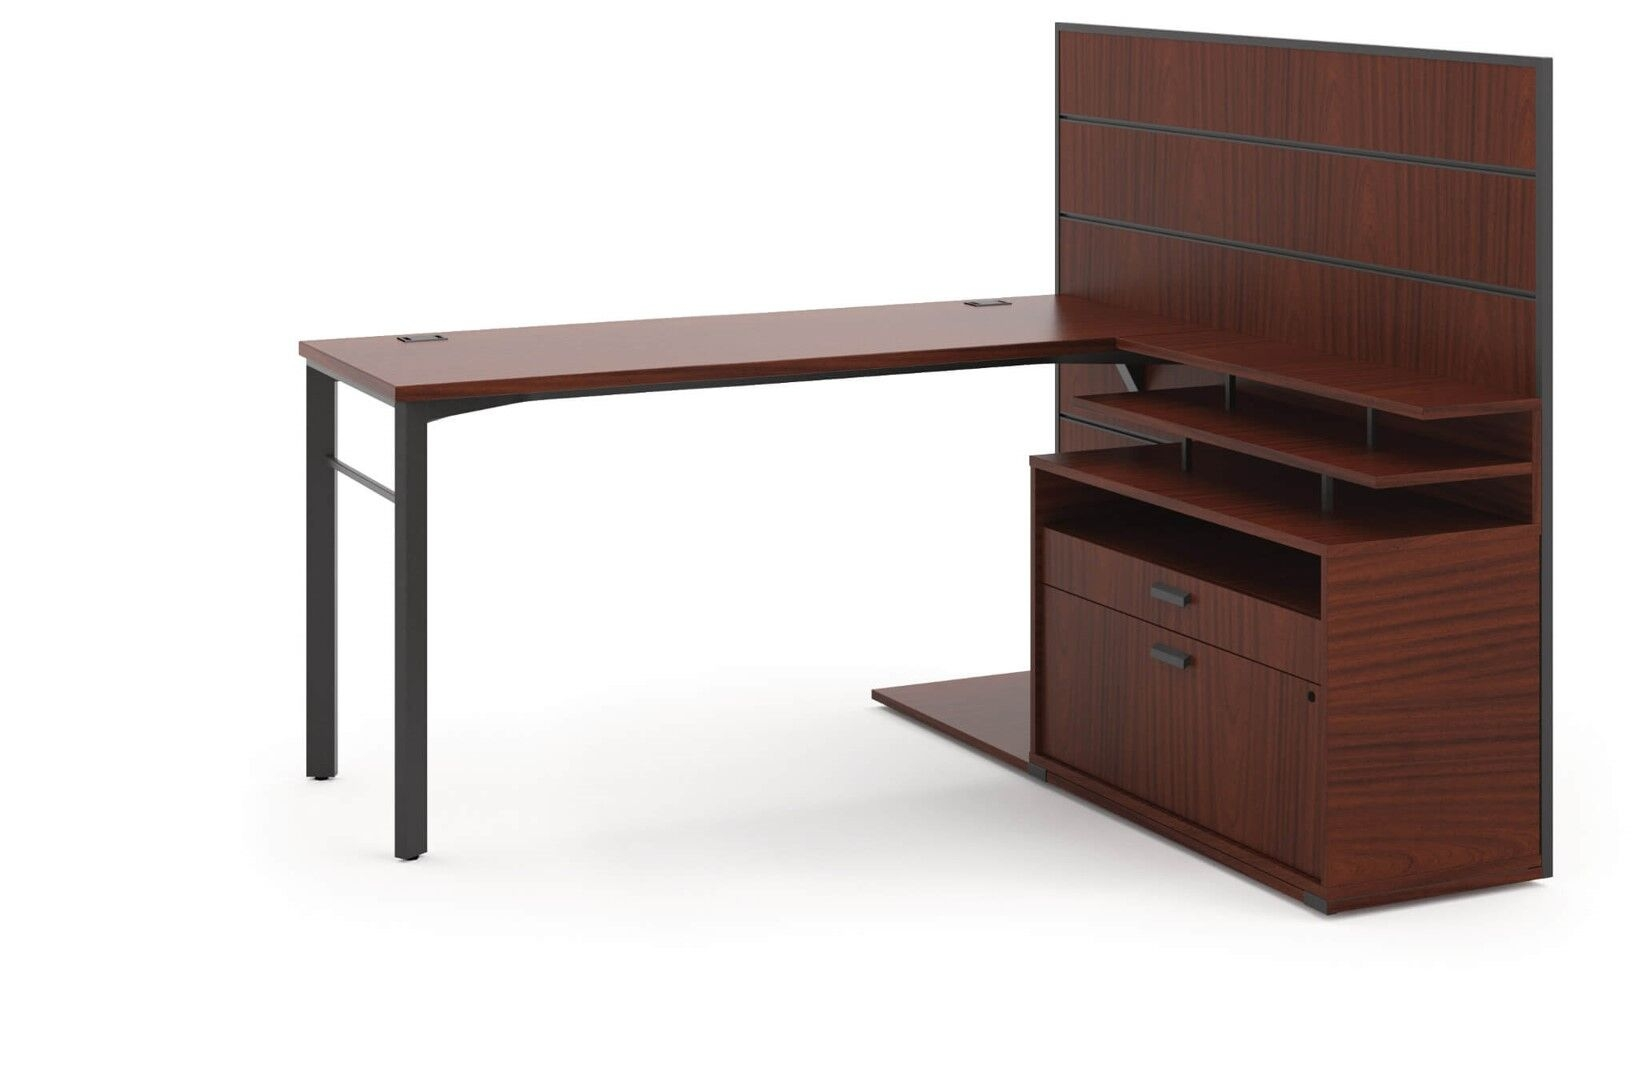 Large l shaped desk CUB HMLDFW6160C NOH_preview